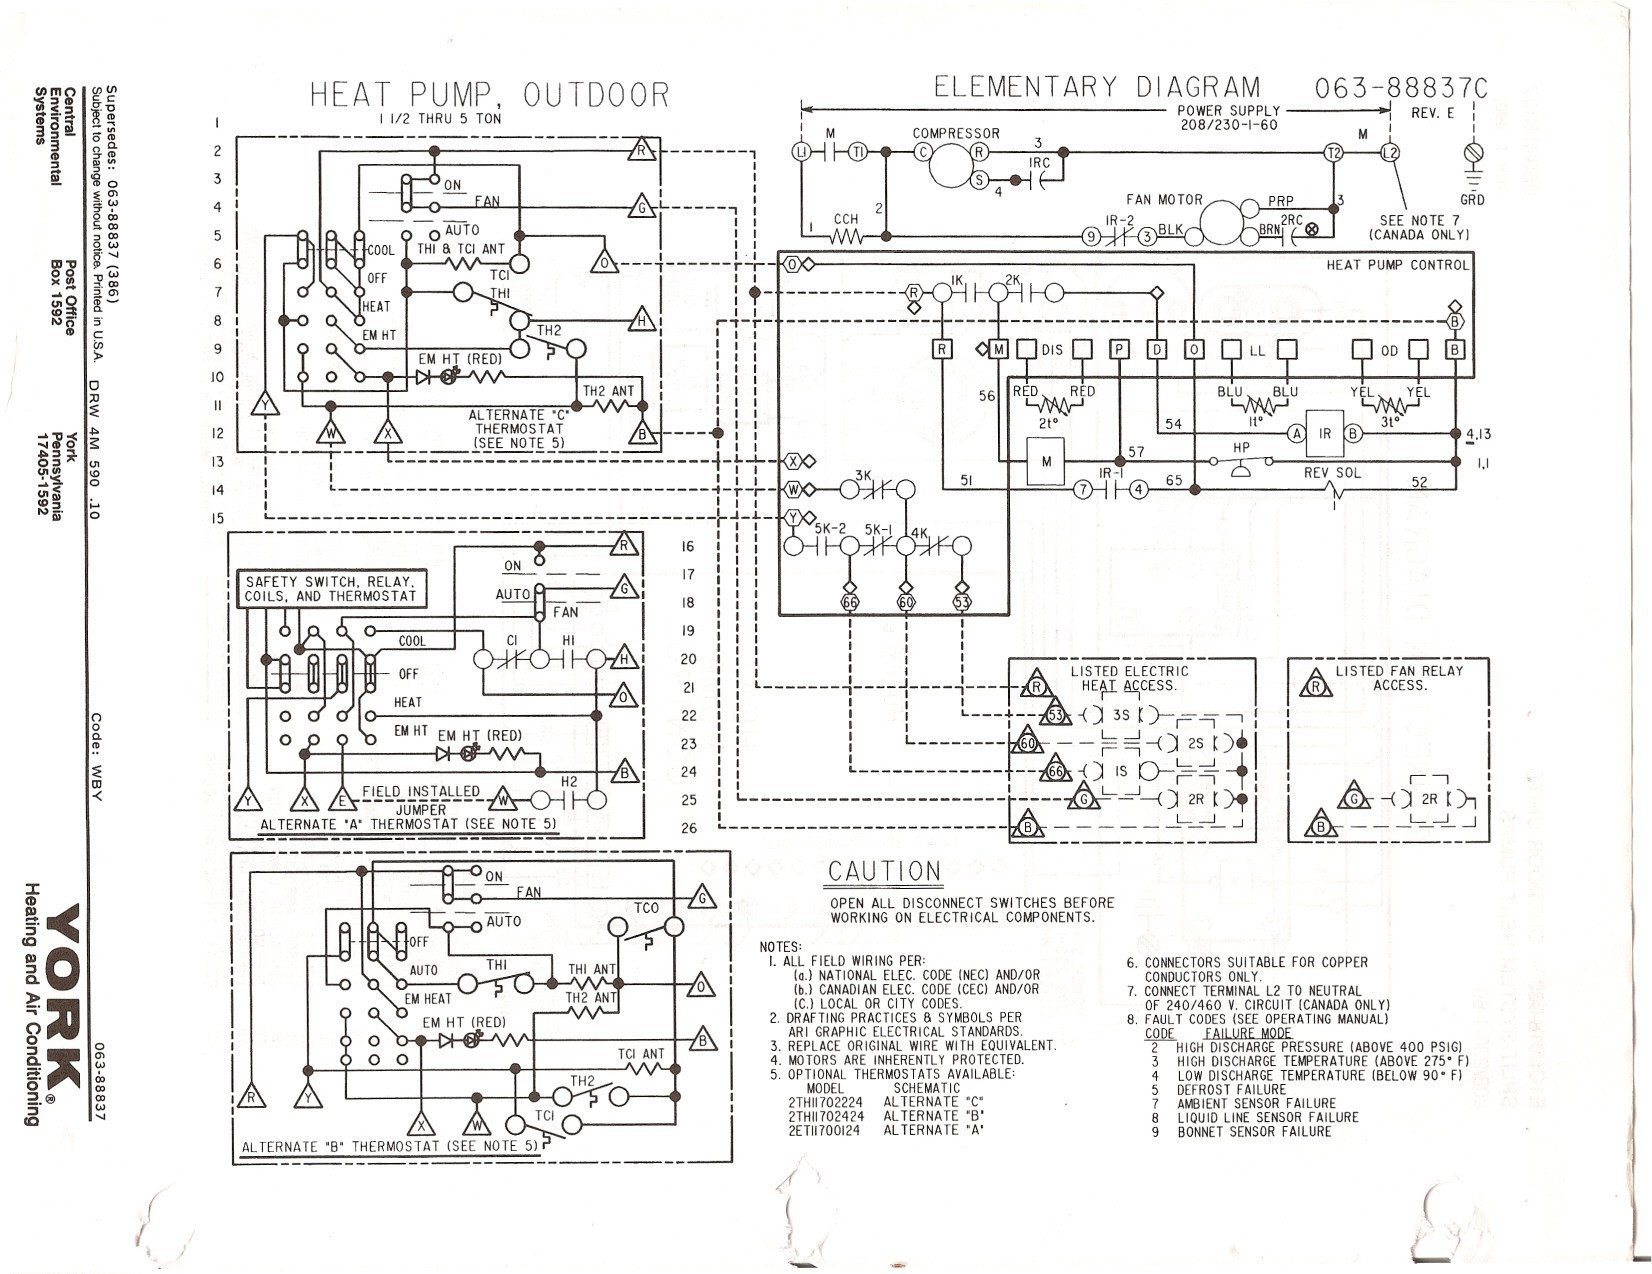 Electric Heat Strip Wiring Diagram Gallery Sample Pump Collection Carrier Air Conditioner Fresh Bryant Download